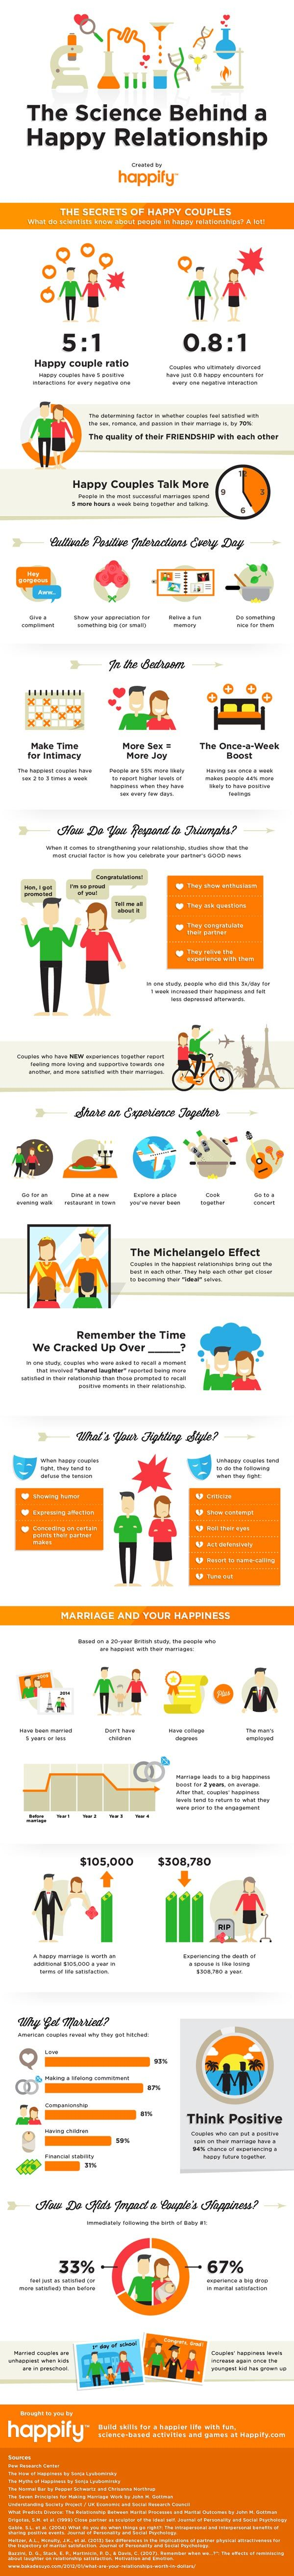 Infographic about happy relationship tips